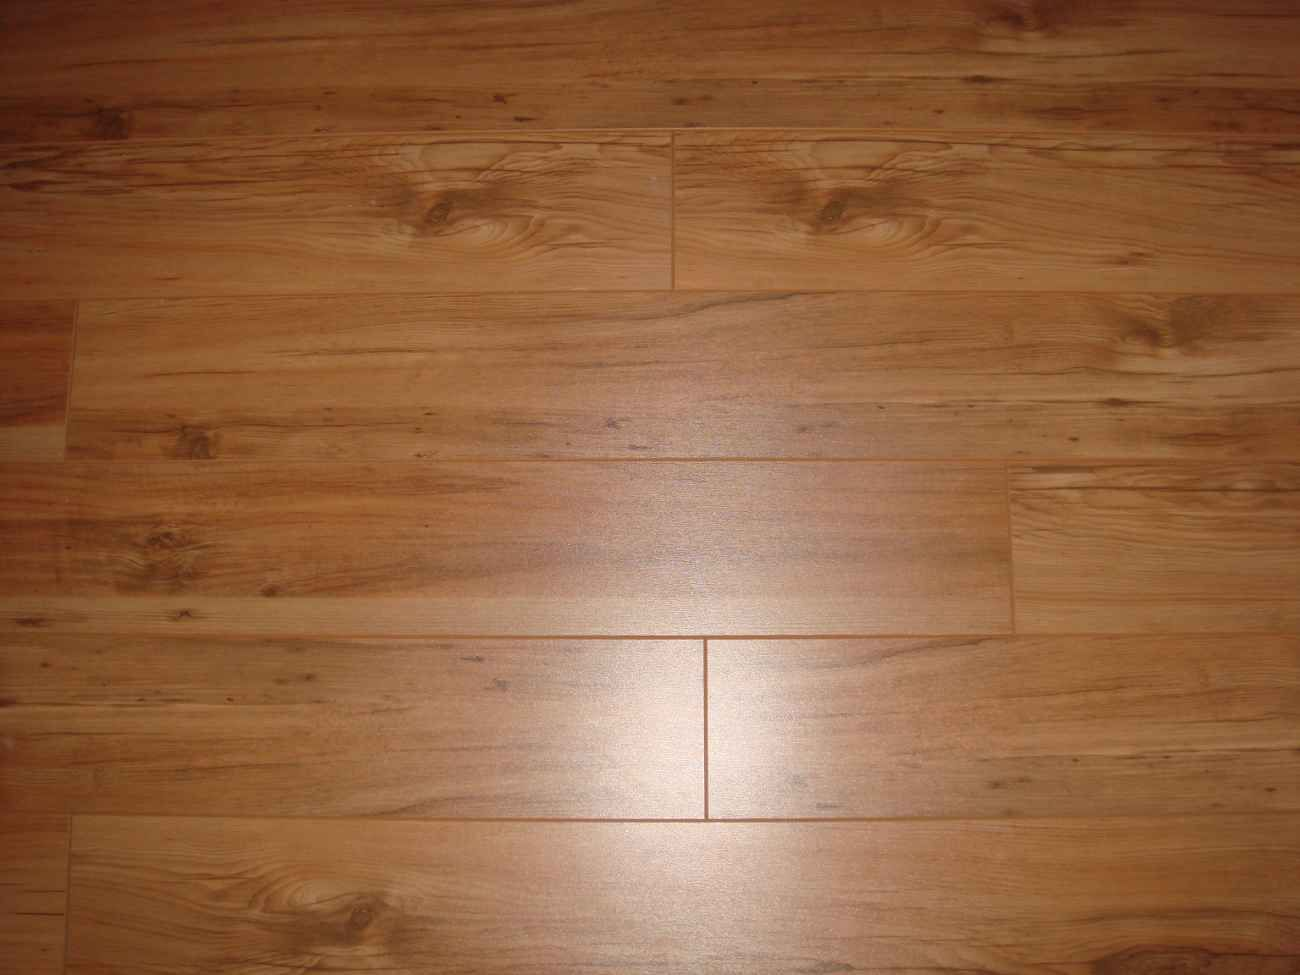 Porcelain Or Ceramic Tile For Kitchen Floor Ceramic Tile That Looks Like Wood Wooden Ceramic Tile Floors